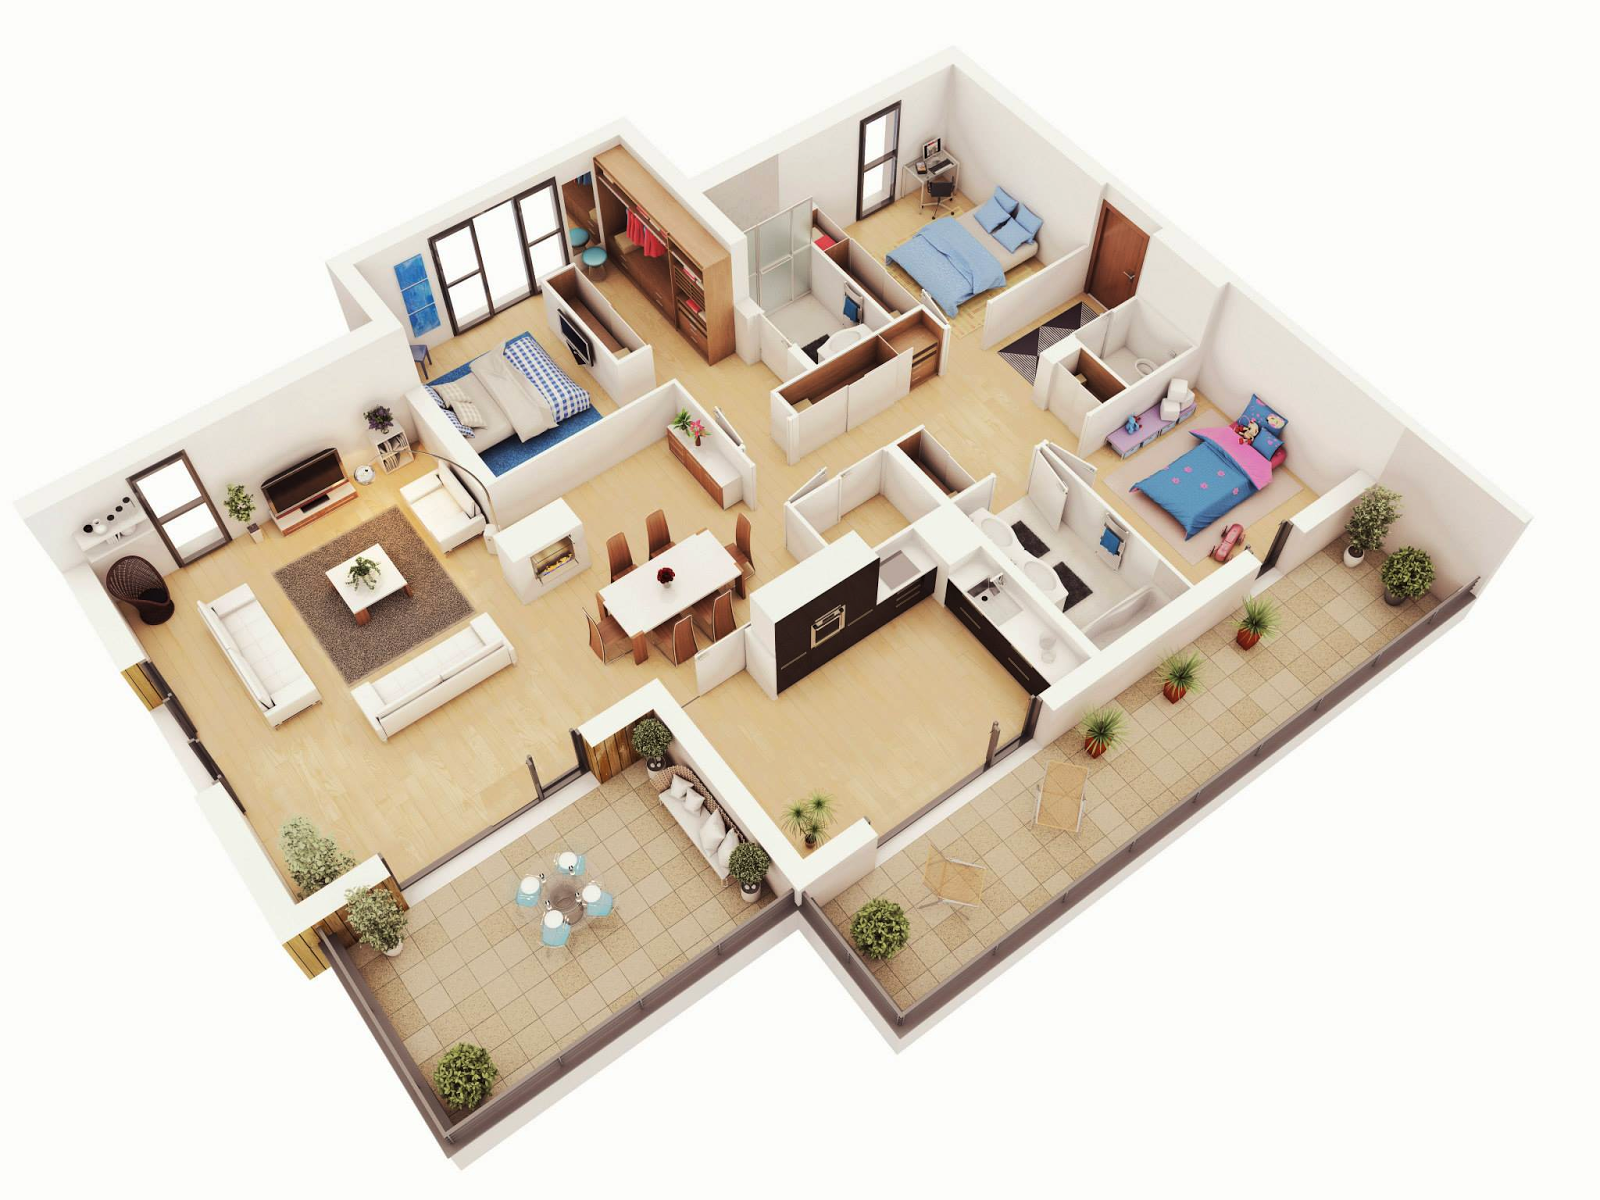 Free 3 bedrooms house design and lay out - Simple home plans bedrooms ...